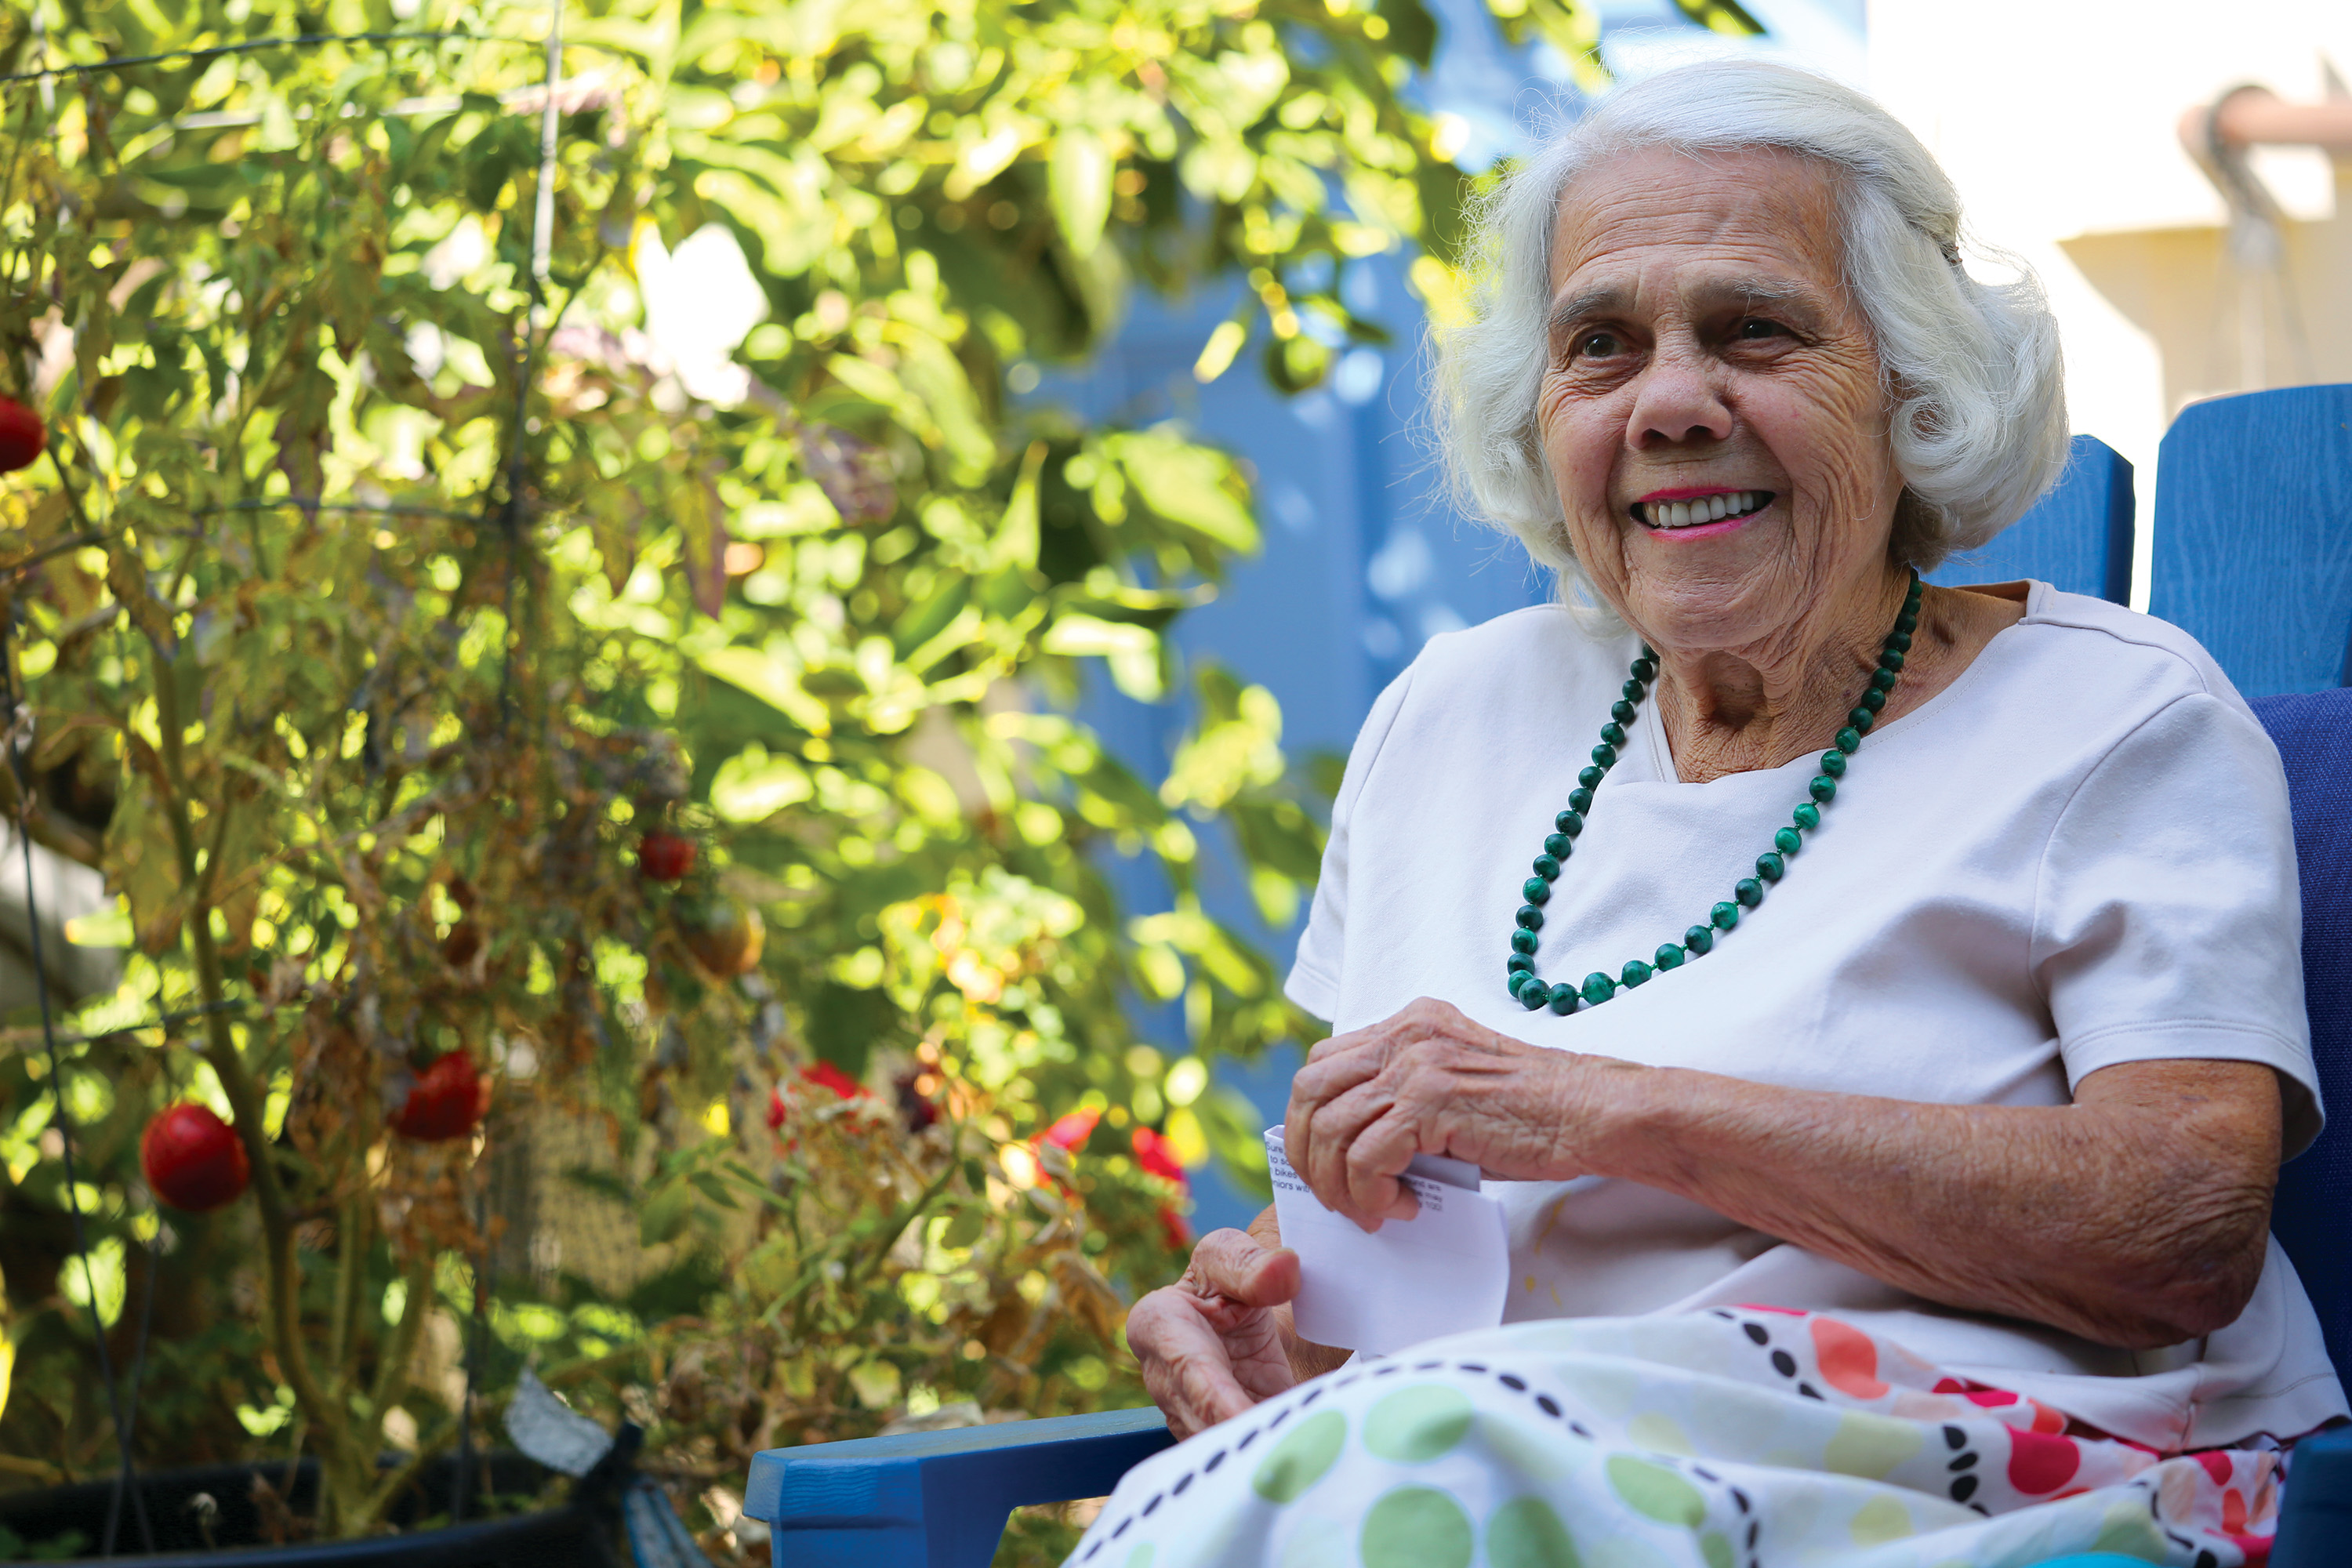 Helen Tombropoulos, a longtime resident of the 100 block of Churchill Avenue in Palo Alto, reminisces about her years in Palo Alto on Sept. 30. Photo by Sammy Dallal.